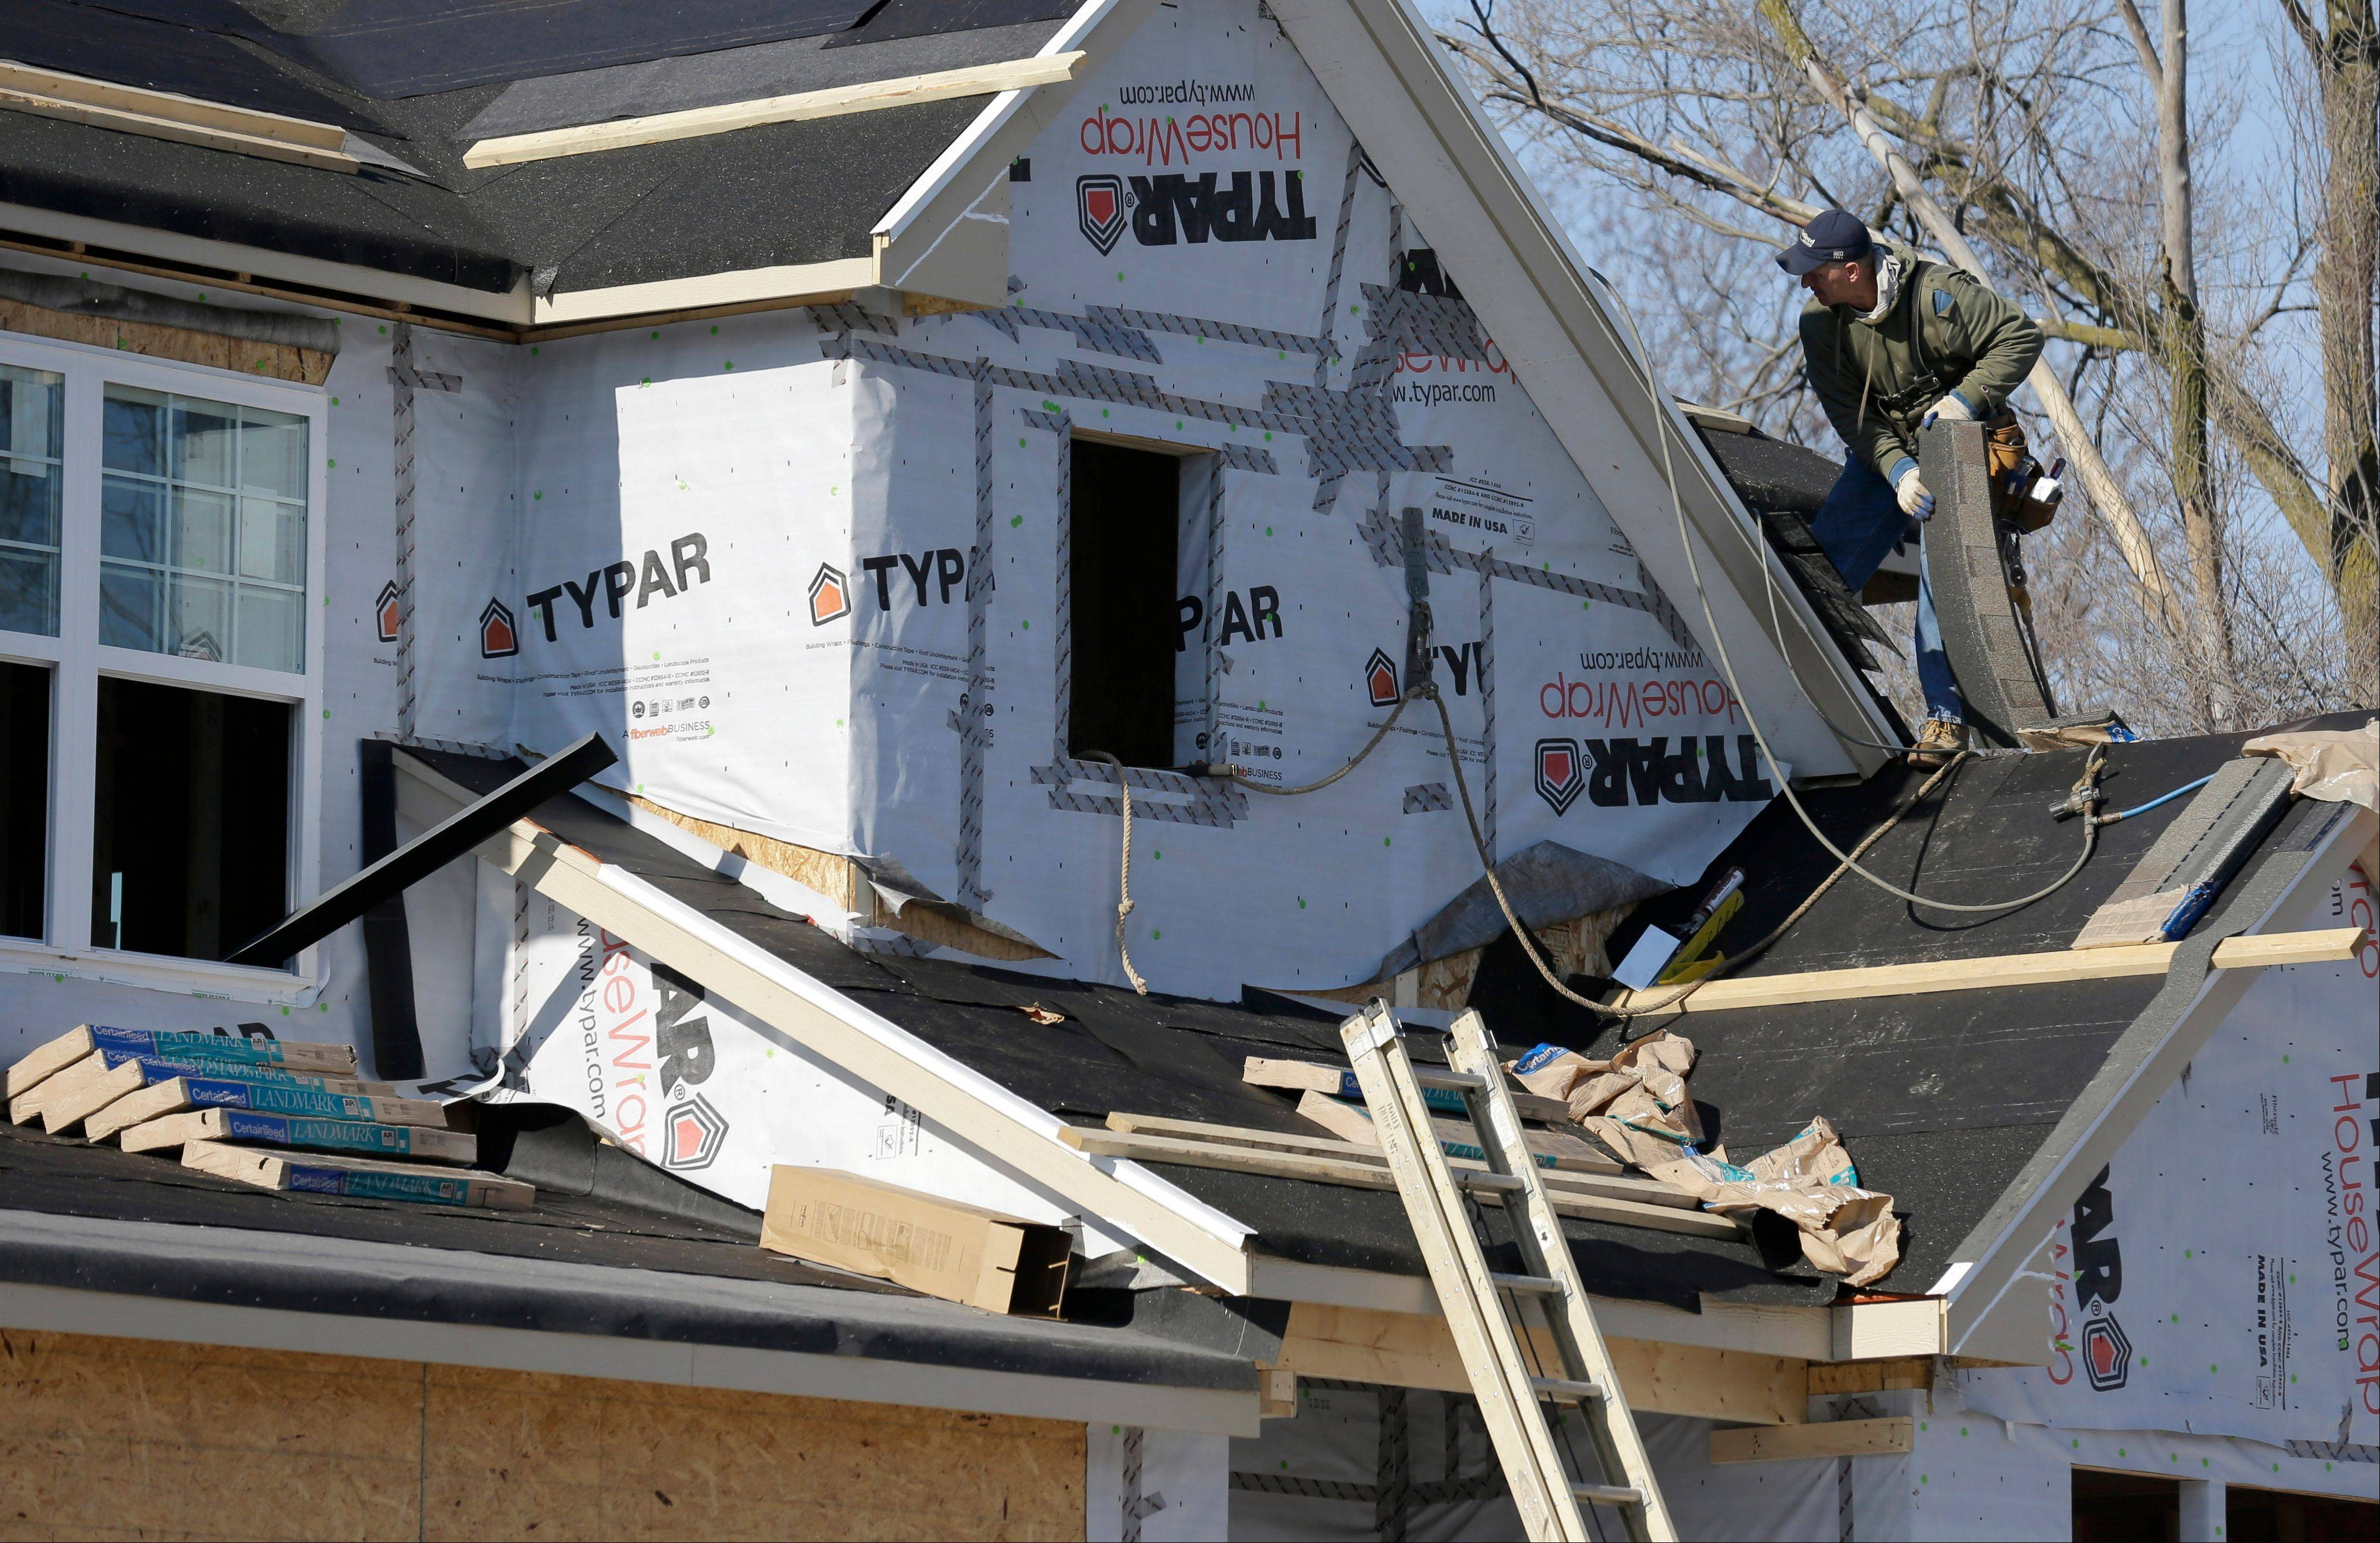 A builder works on the the roof of a home under construction in Wilmette last December.